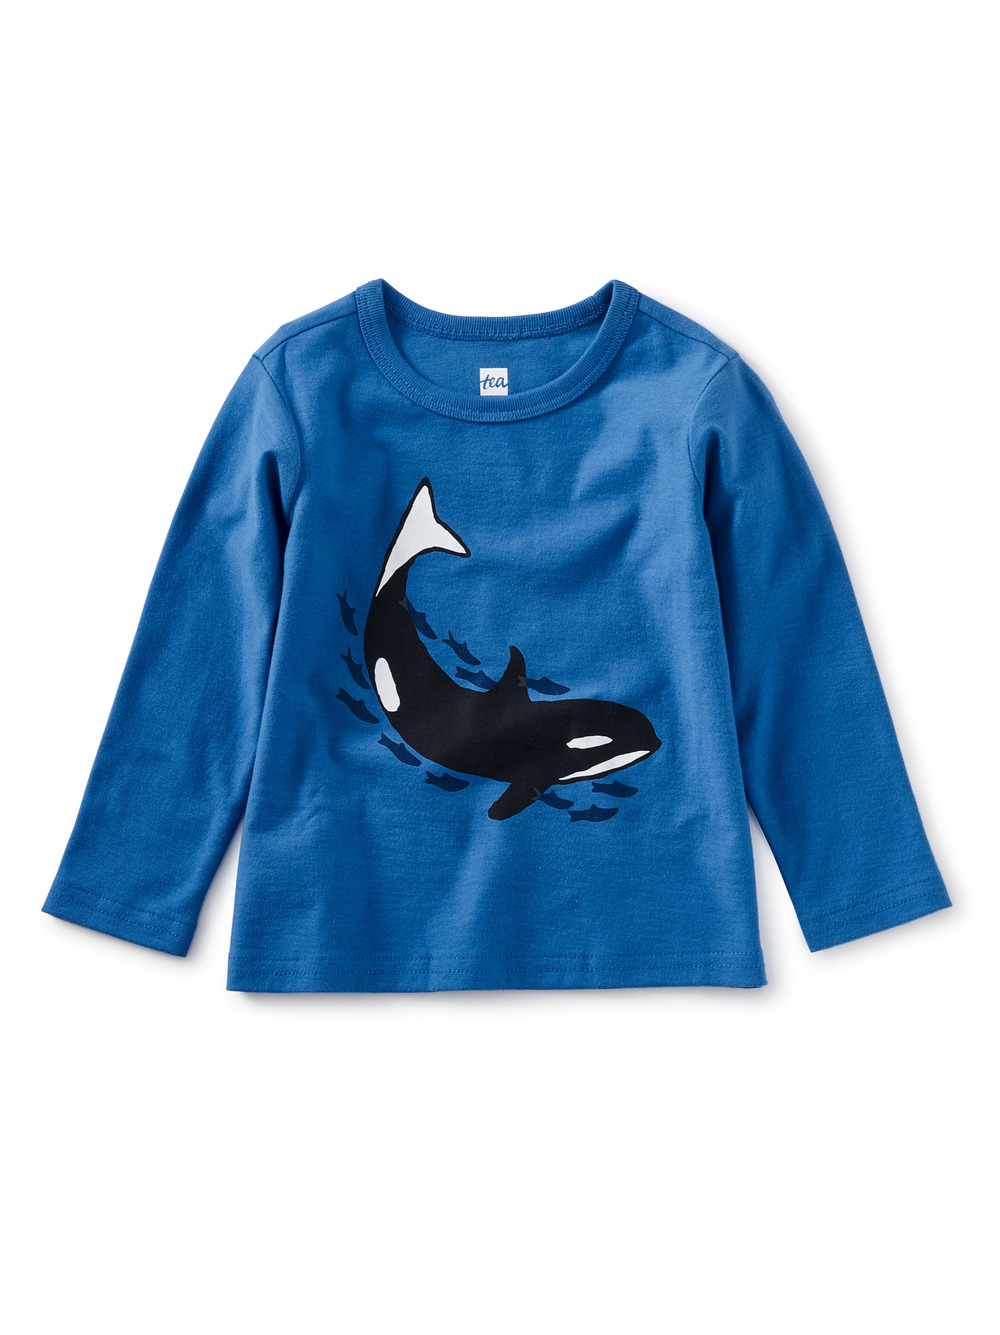 Either Orca Baby Graphic Tee